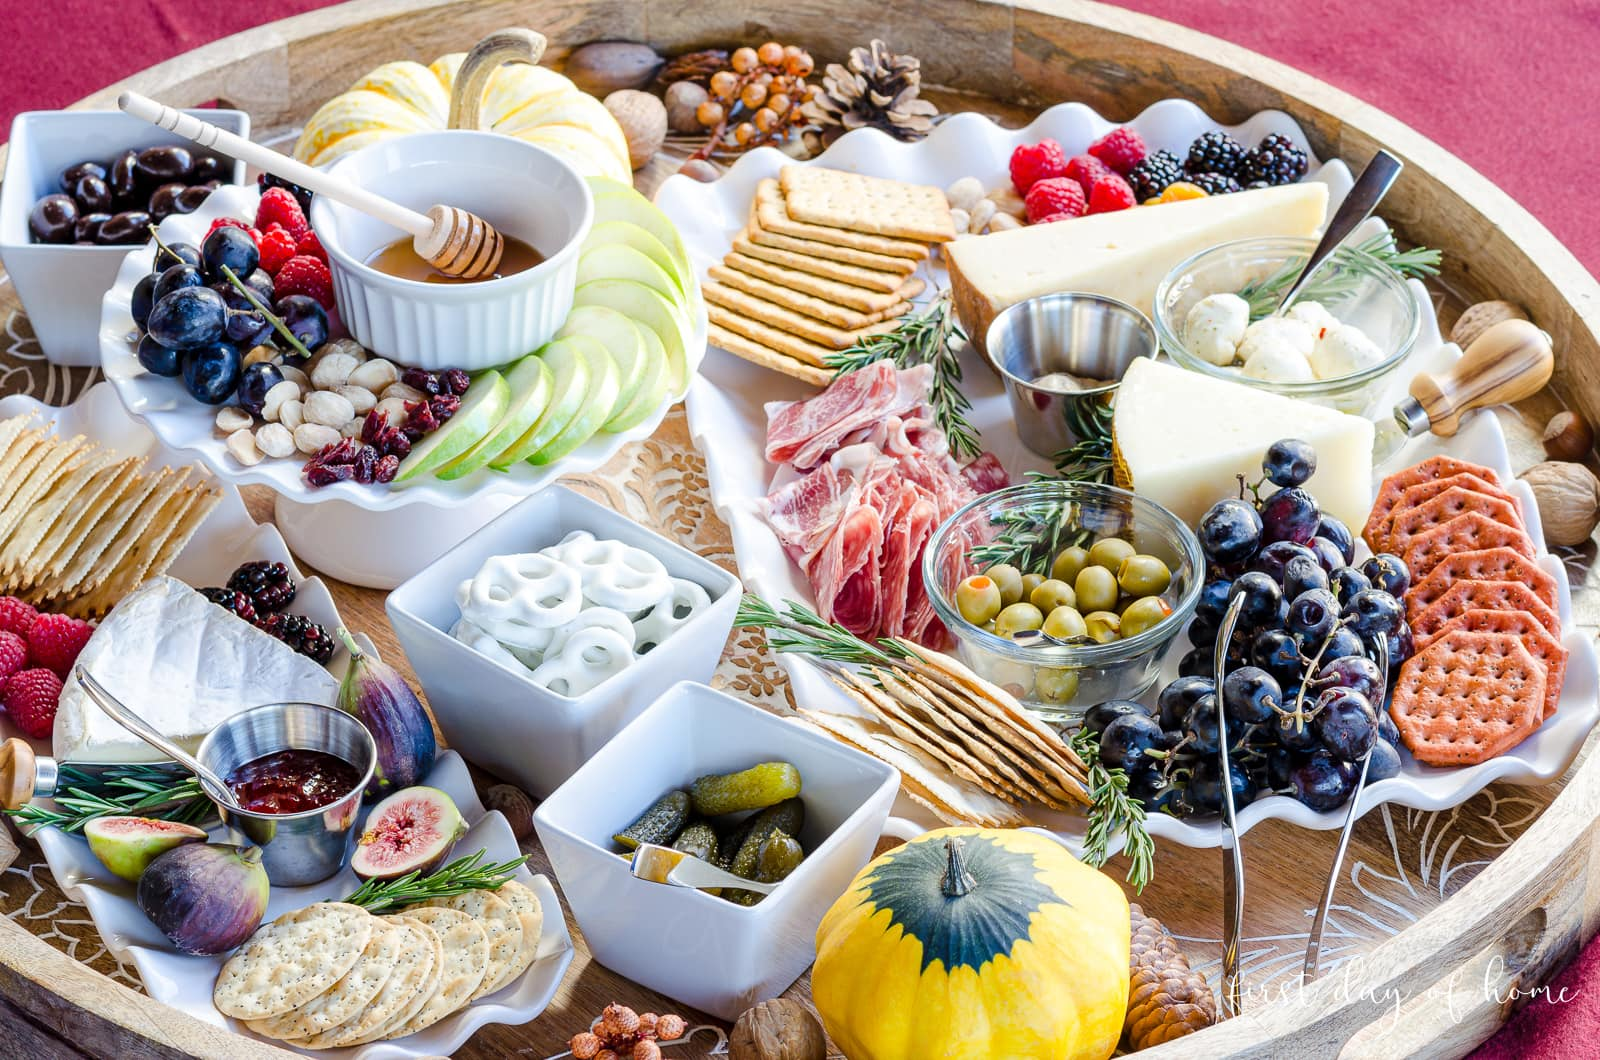 Charcuterie tray with various meats, cheeses, pickled foods, dips, preserves, crackers, nuts, fruits and honey